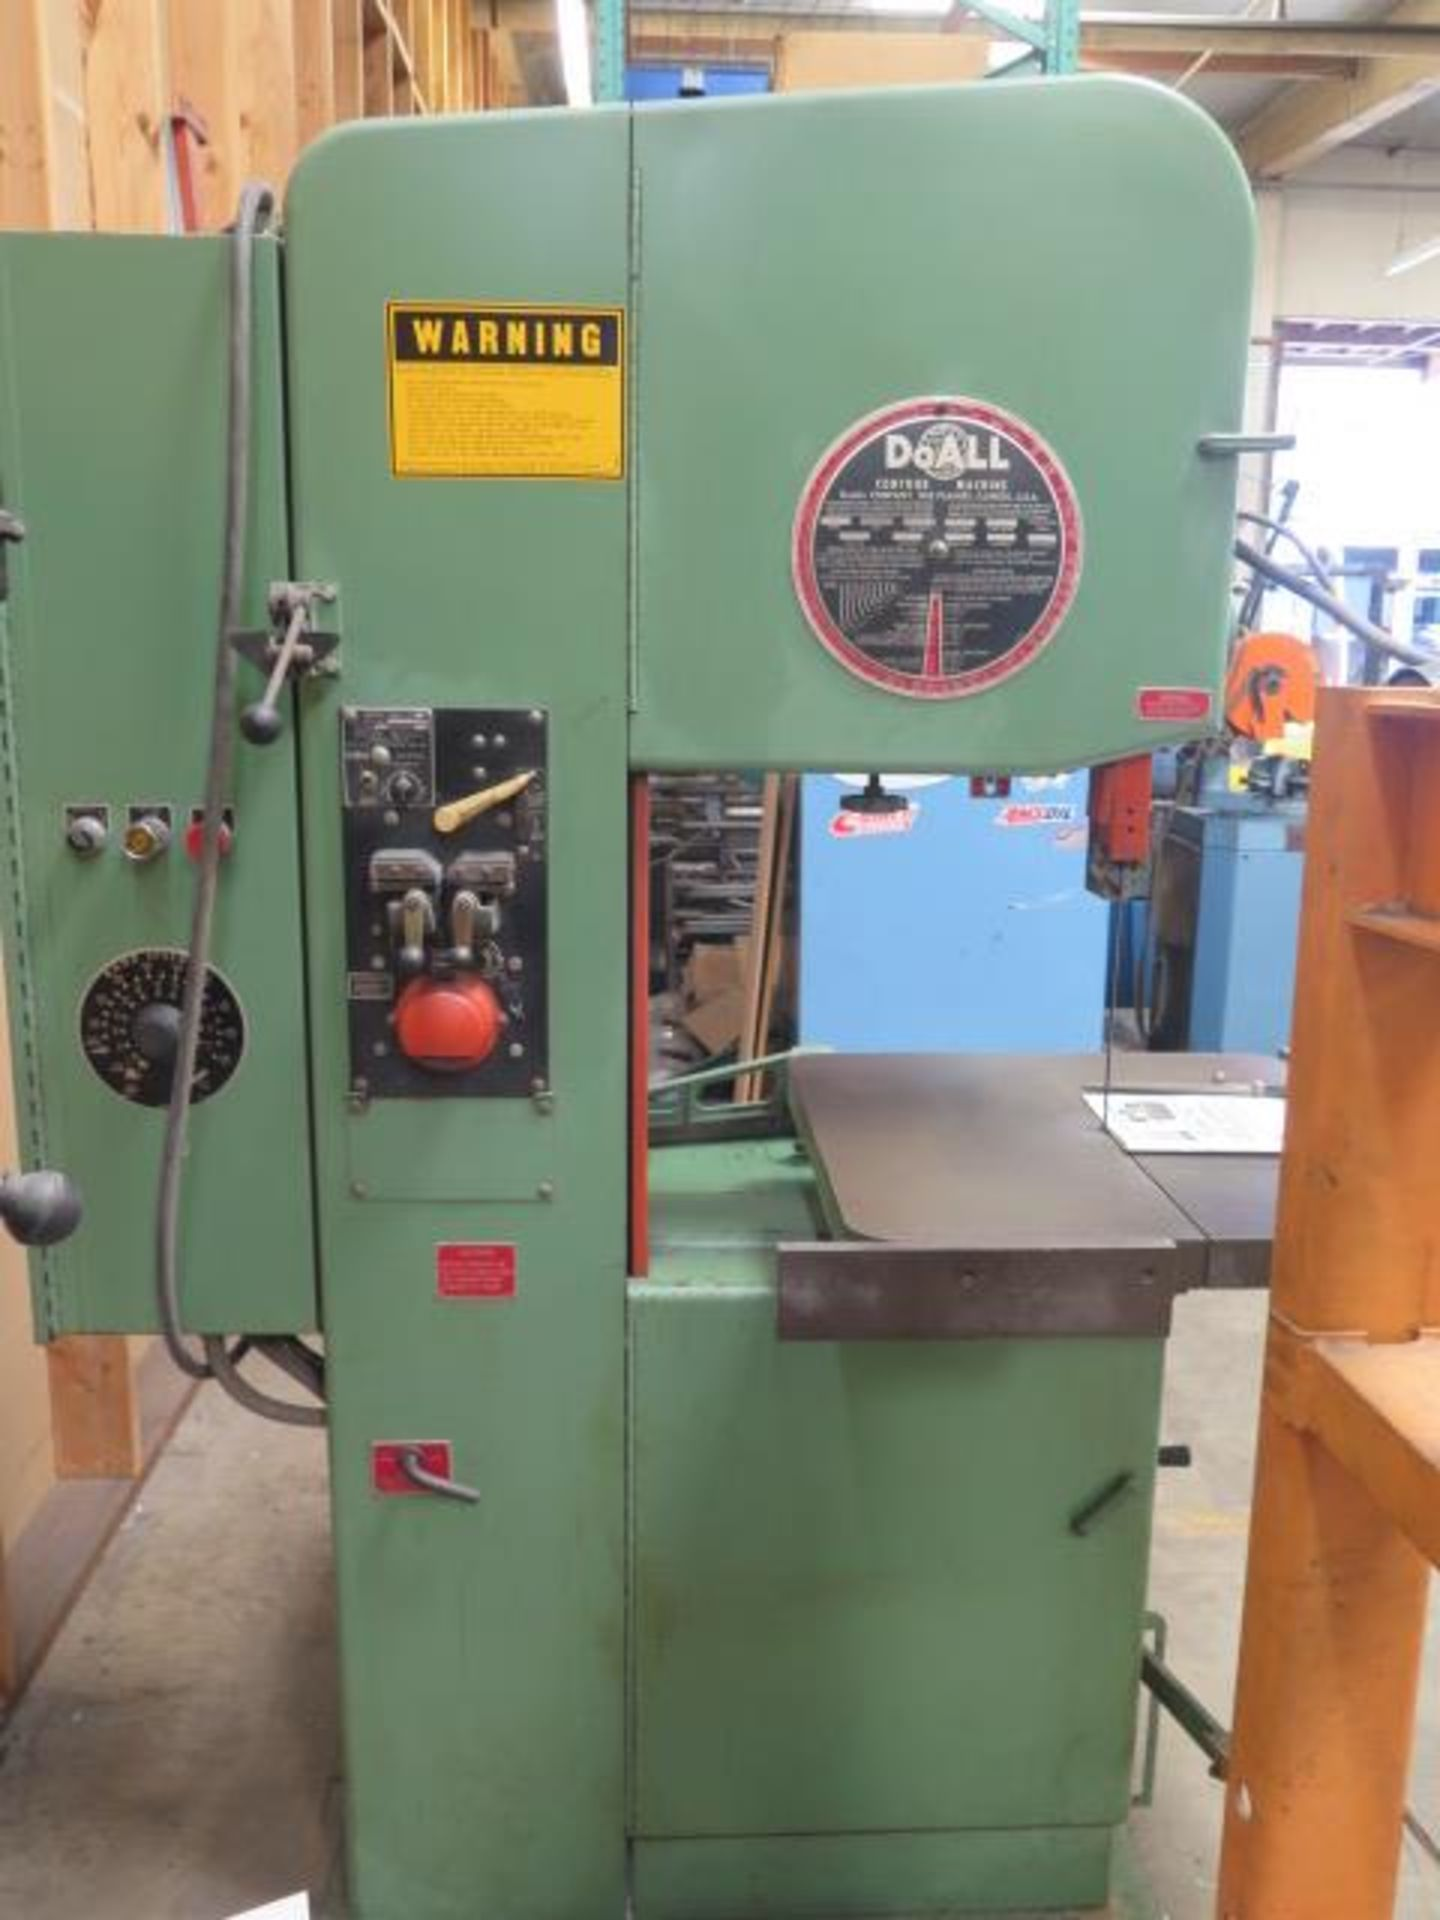 "DoAll 2013-10 20"" Vertical Band Saw s/n 377-861259 w/ Welder, 0-5200 RPM 26"" x 26"" Table, SOLD AS IS - Image 2 of 11"